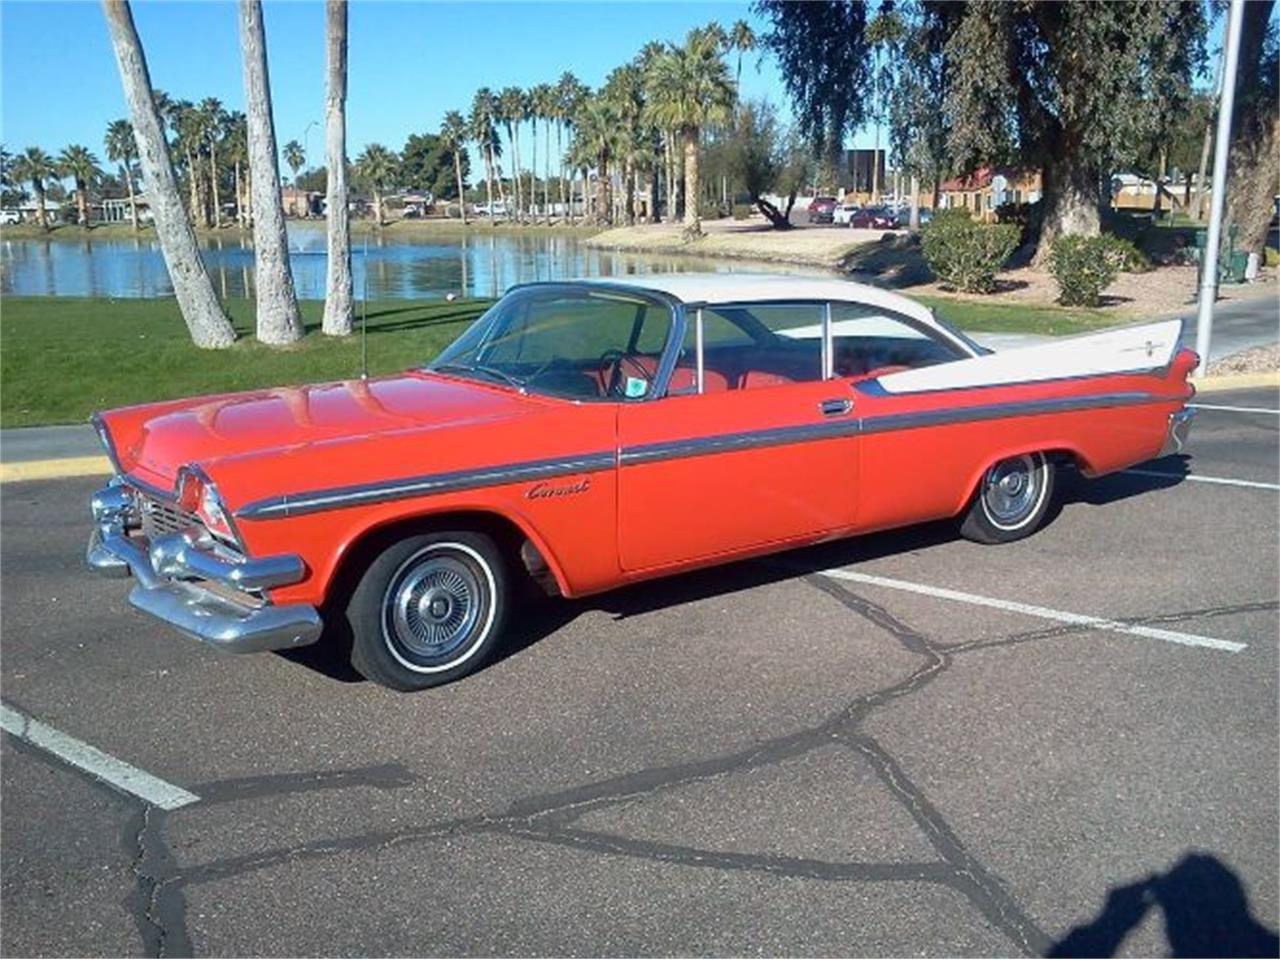 Large Picture of Classic 1958 Dodge Coronet located in Cadillac Michigan - $23,495.00 Offered by Classic Car Deals - Q2PI